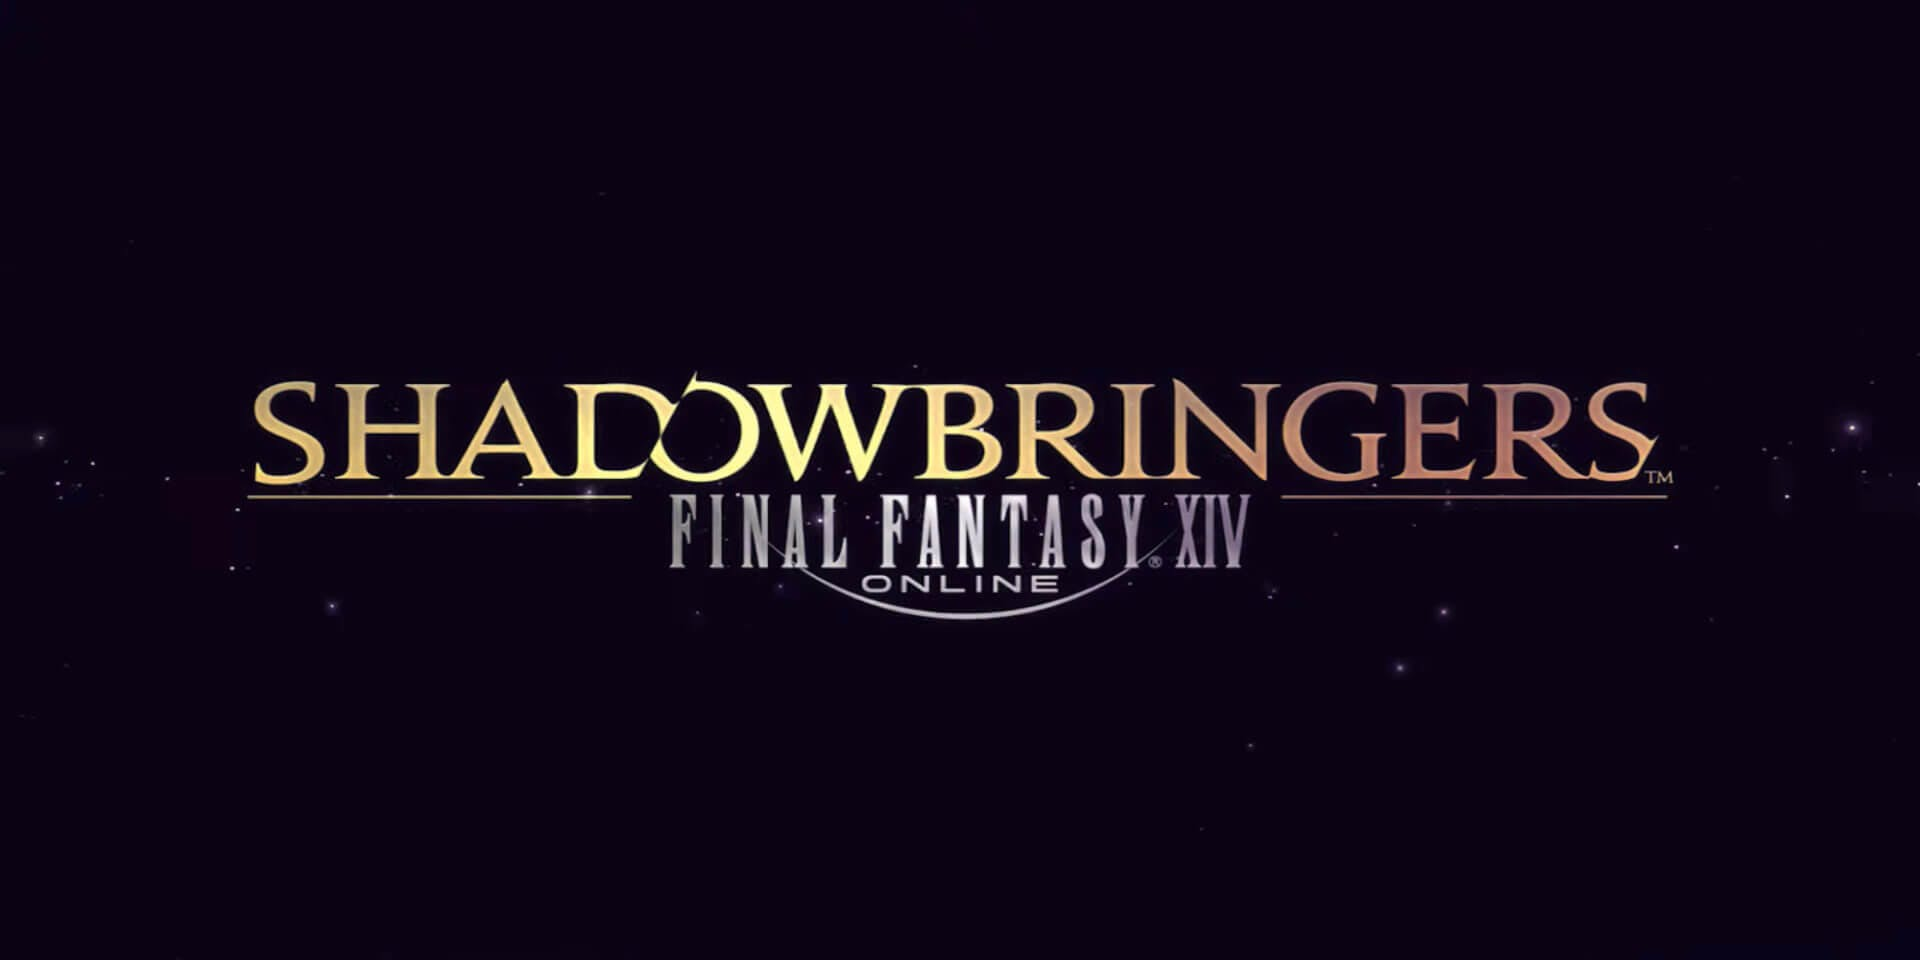 best rpg games 2019 final fantasy 14 shadowbringers